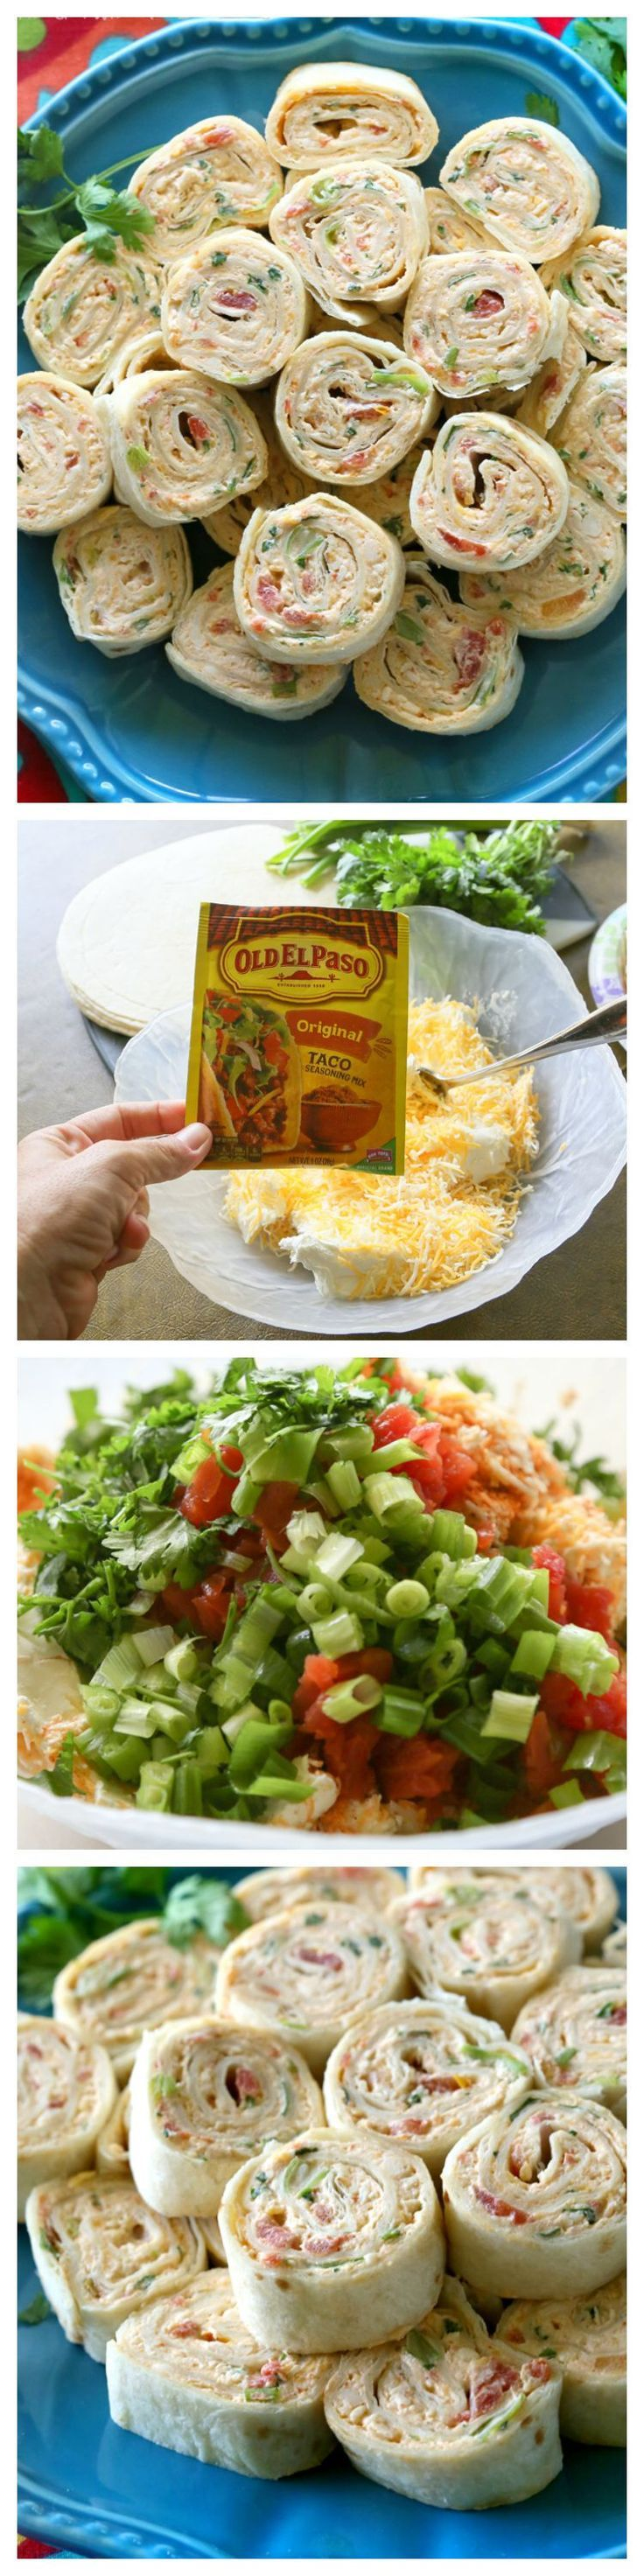 These Chicken Enchilada Roll Ups are a great appetizer for parties! Easy to make ahead and easy to serve. the-girl-who-ate-everything.com